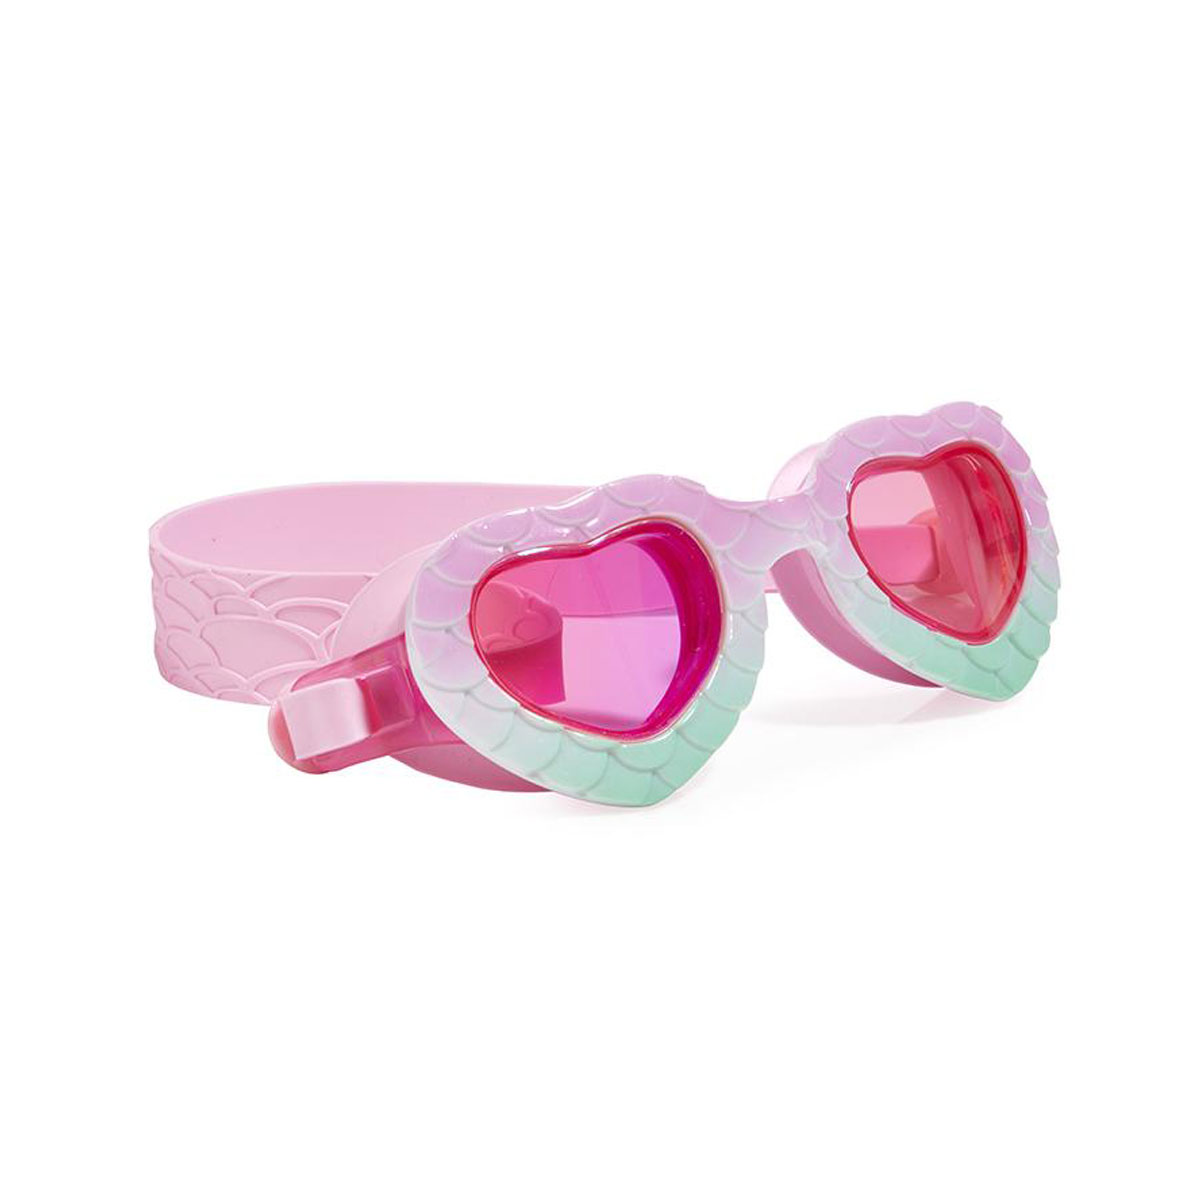 Stella Cove Goggles in Mermaid In Shade in Pink & Mint